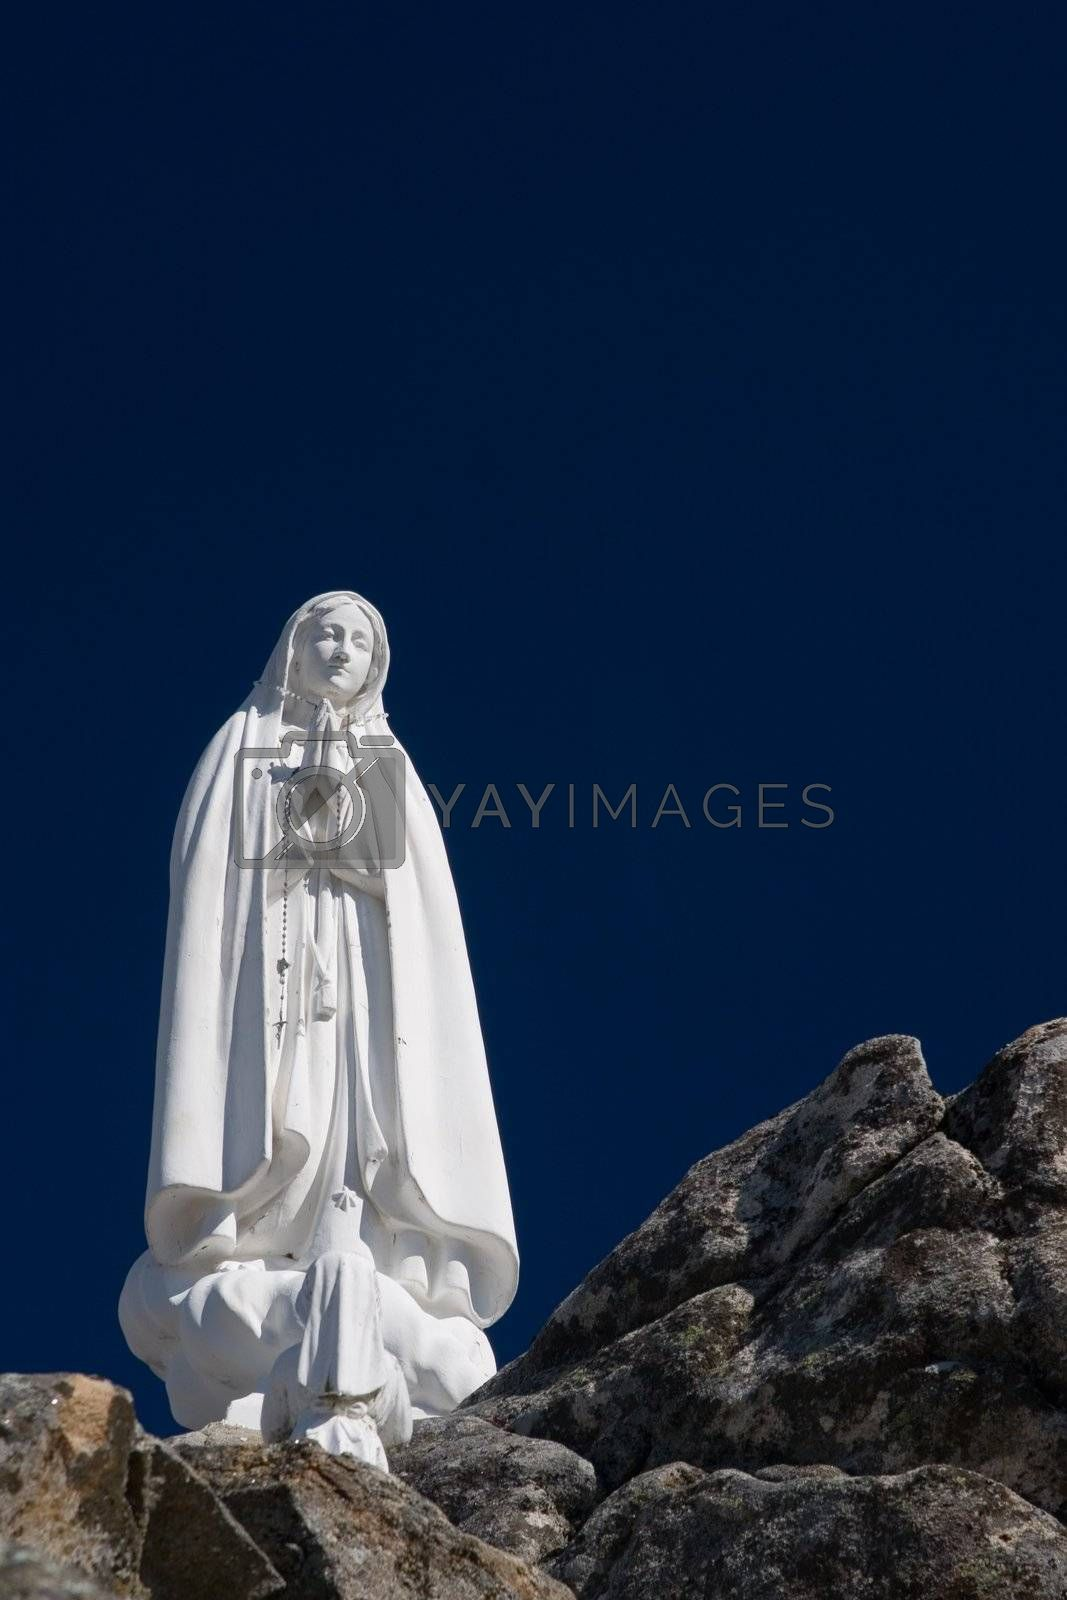 Statue of the Virgin Mary (Our Lady of Fatima) with deep blue sky.